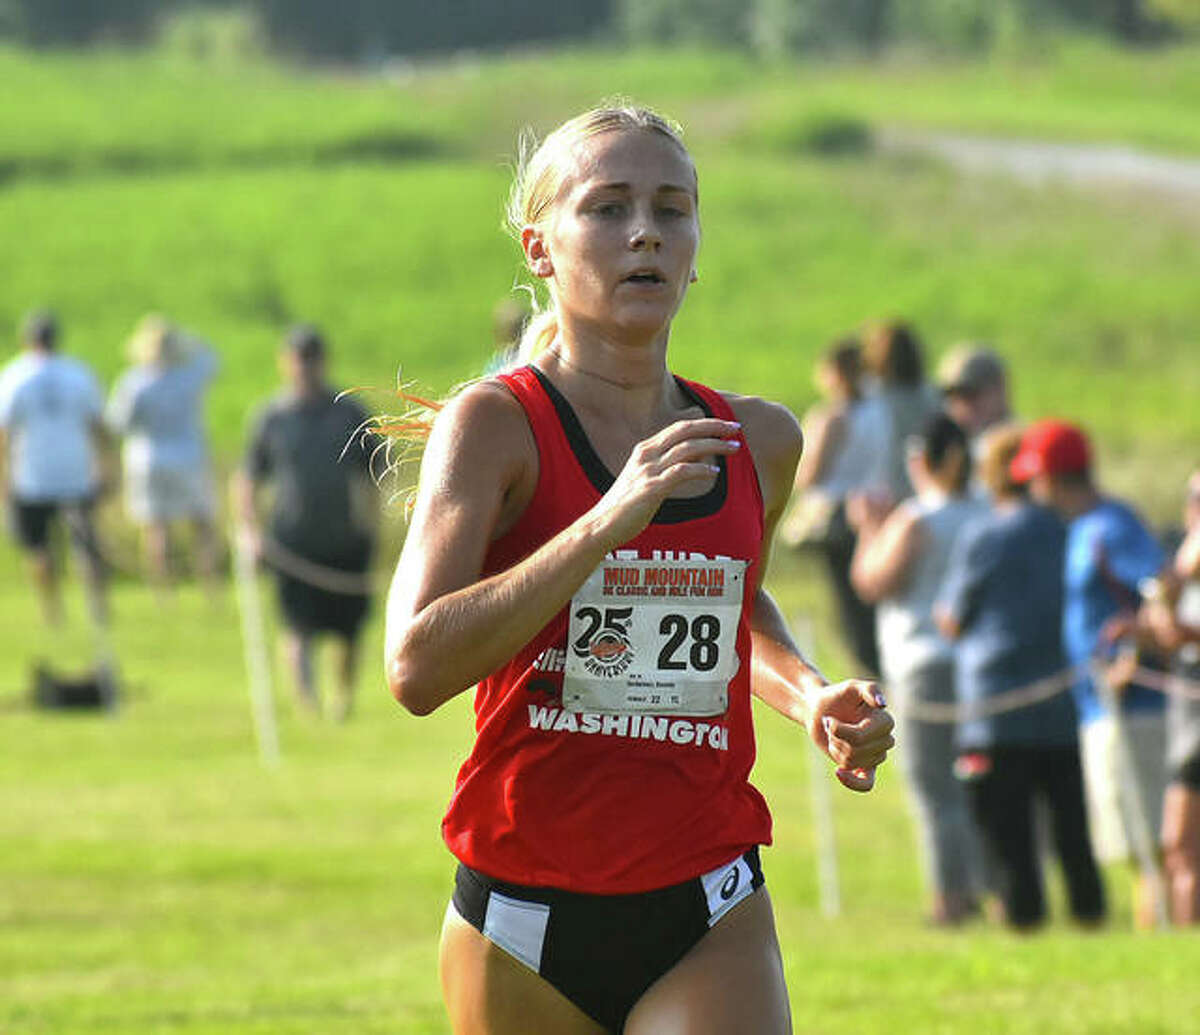 SIUE rising senior Kassidy Dexheimer was the top female finisher at Mud Mountain on Saturday at SIUE.